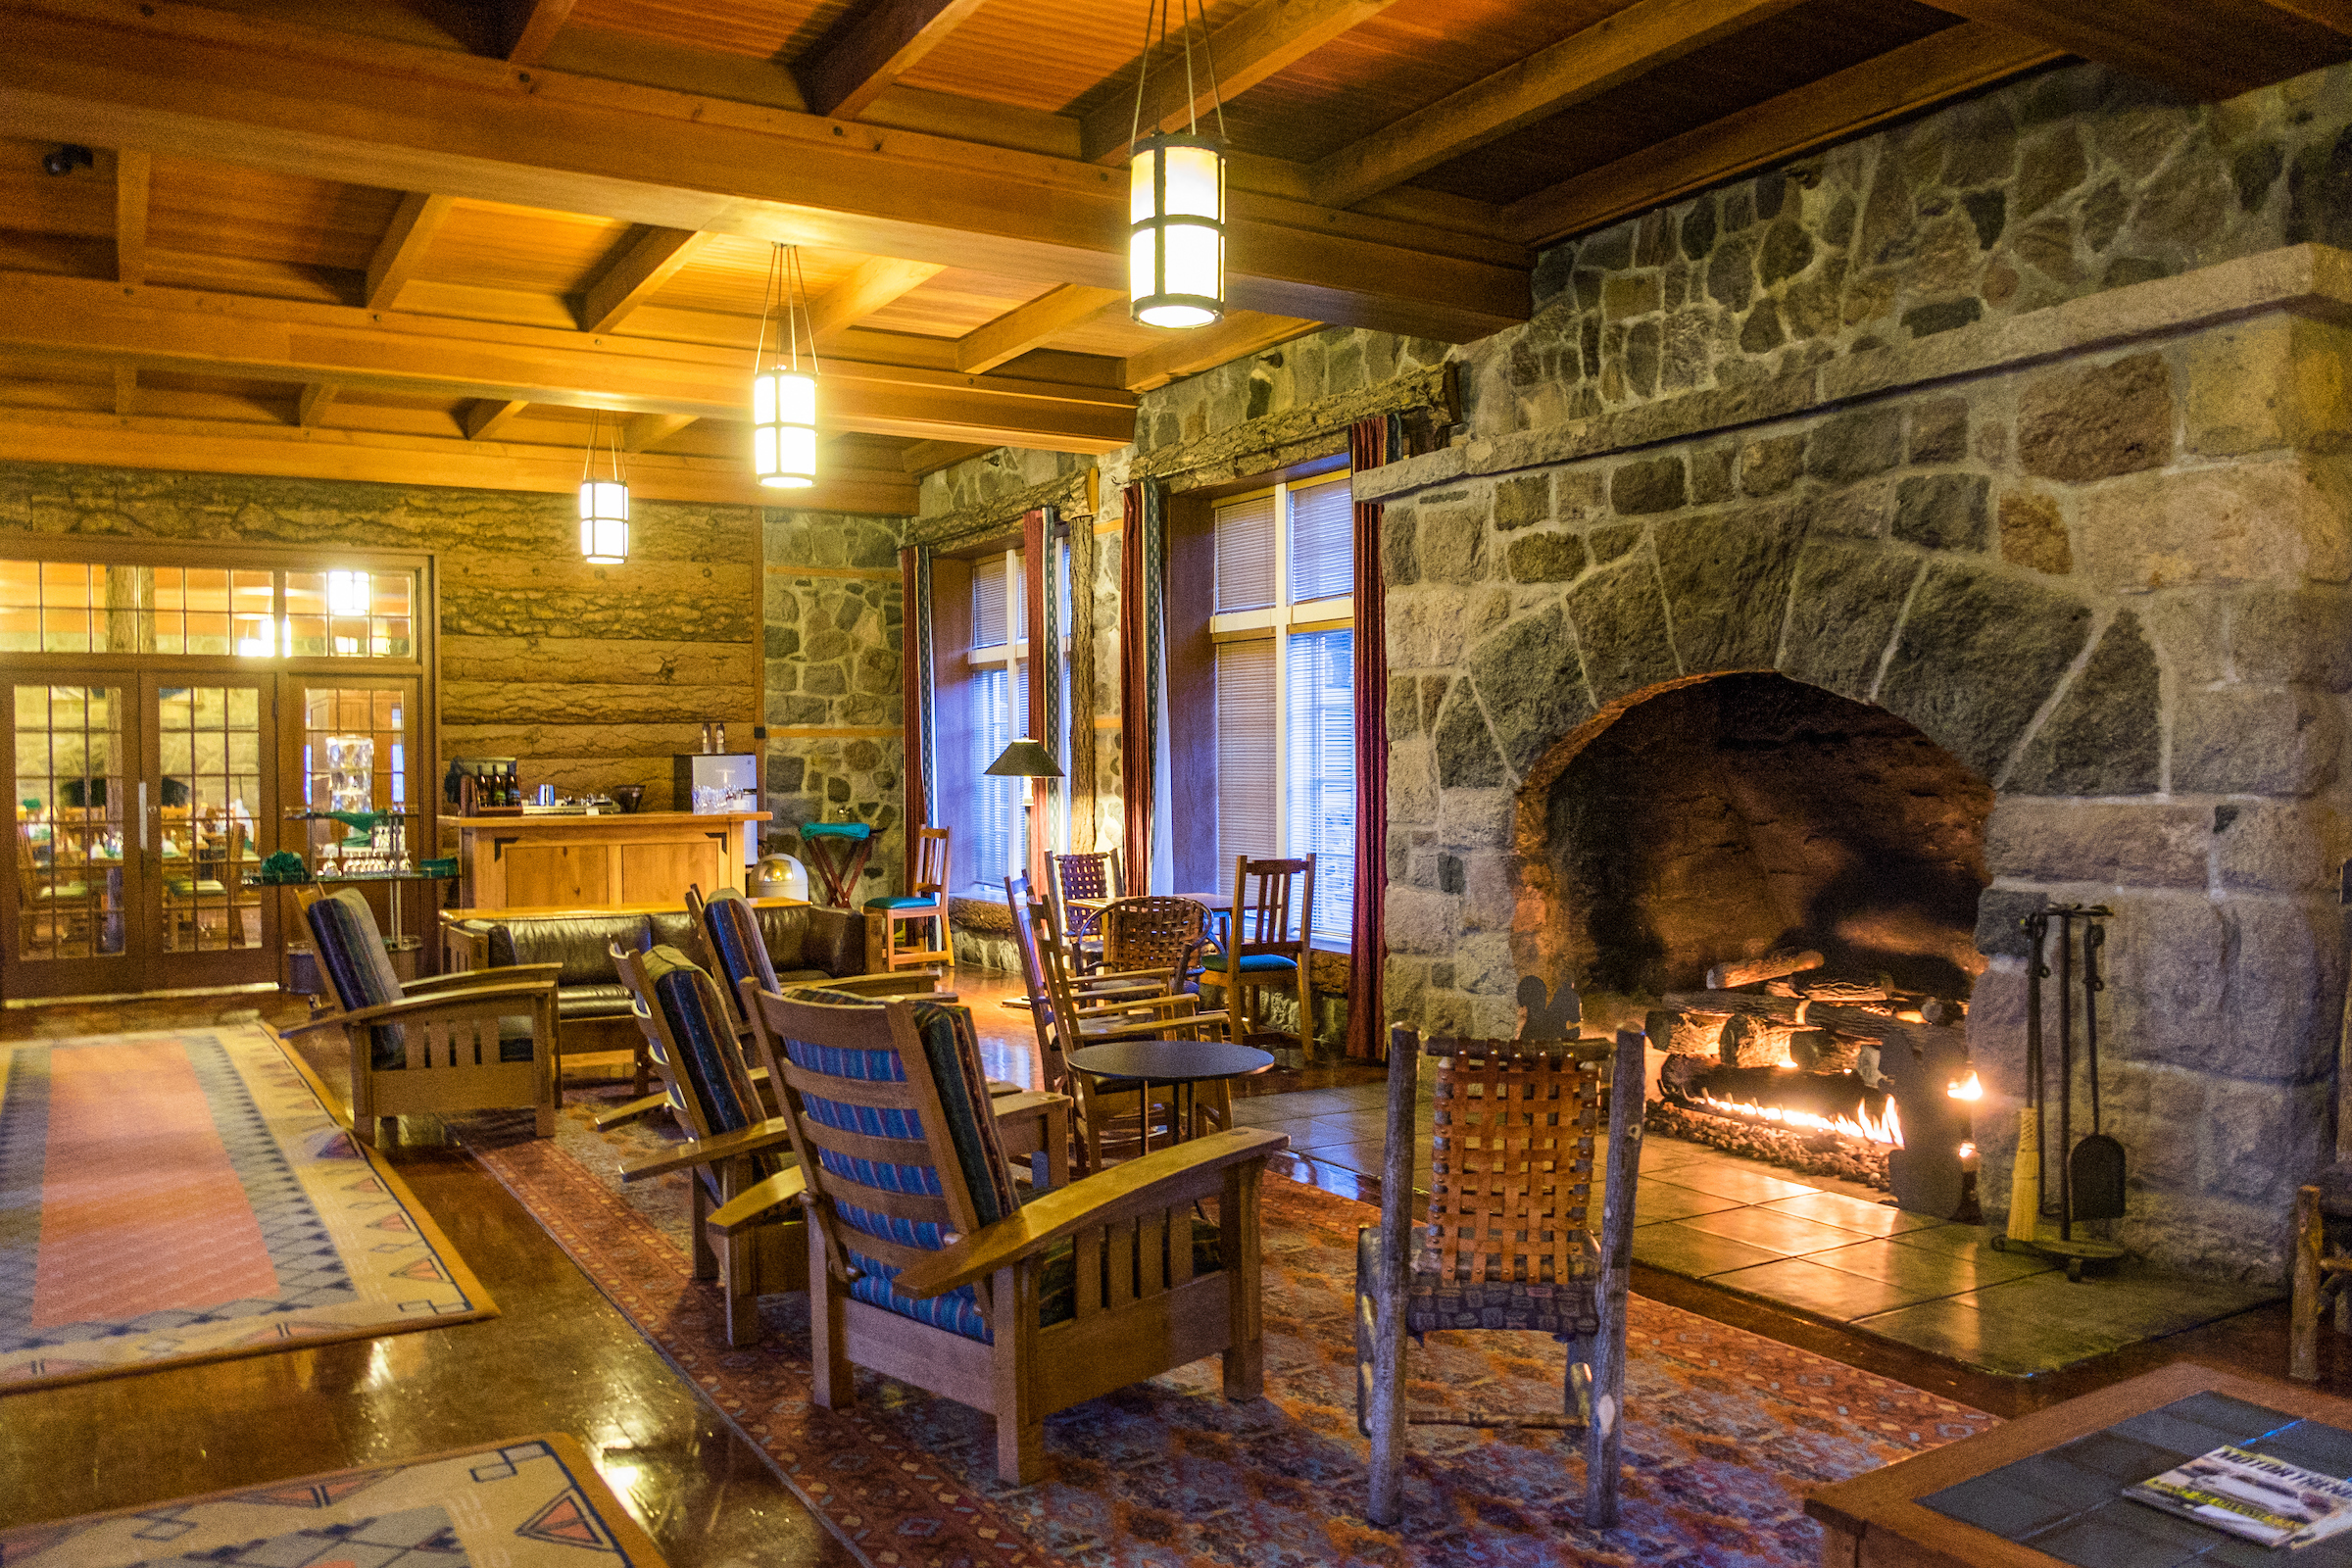 This is the main sitting room of the lodge.